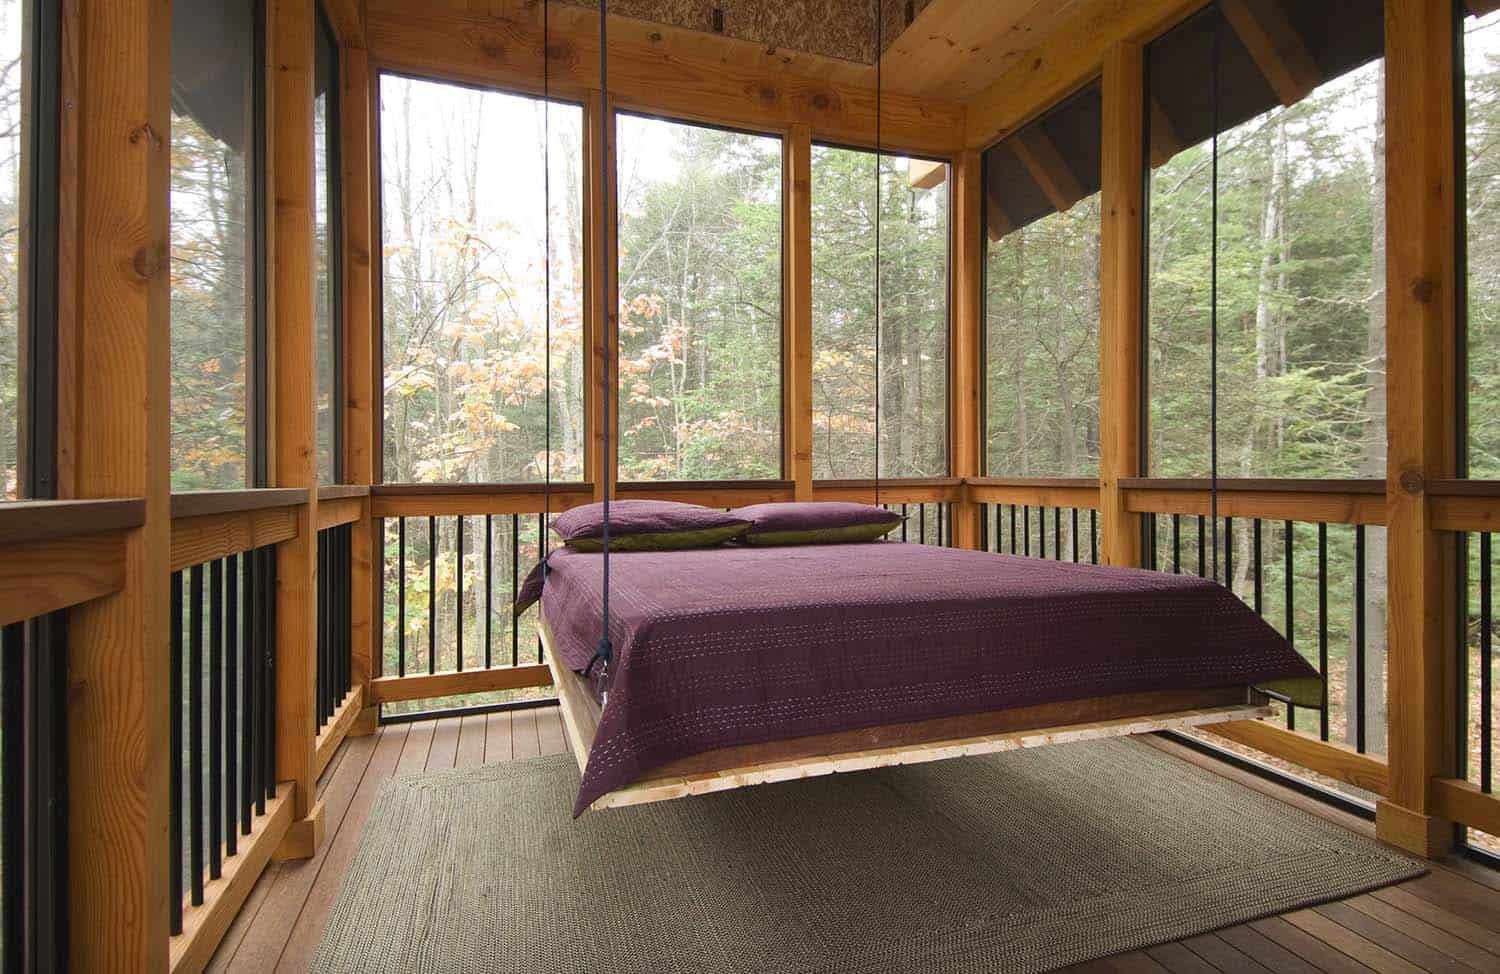 25 Amazingly cozy and relaxing screened porch design ideas